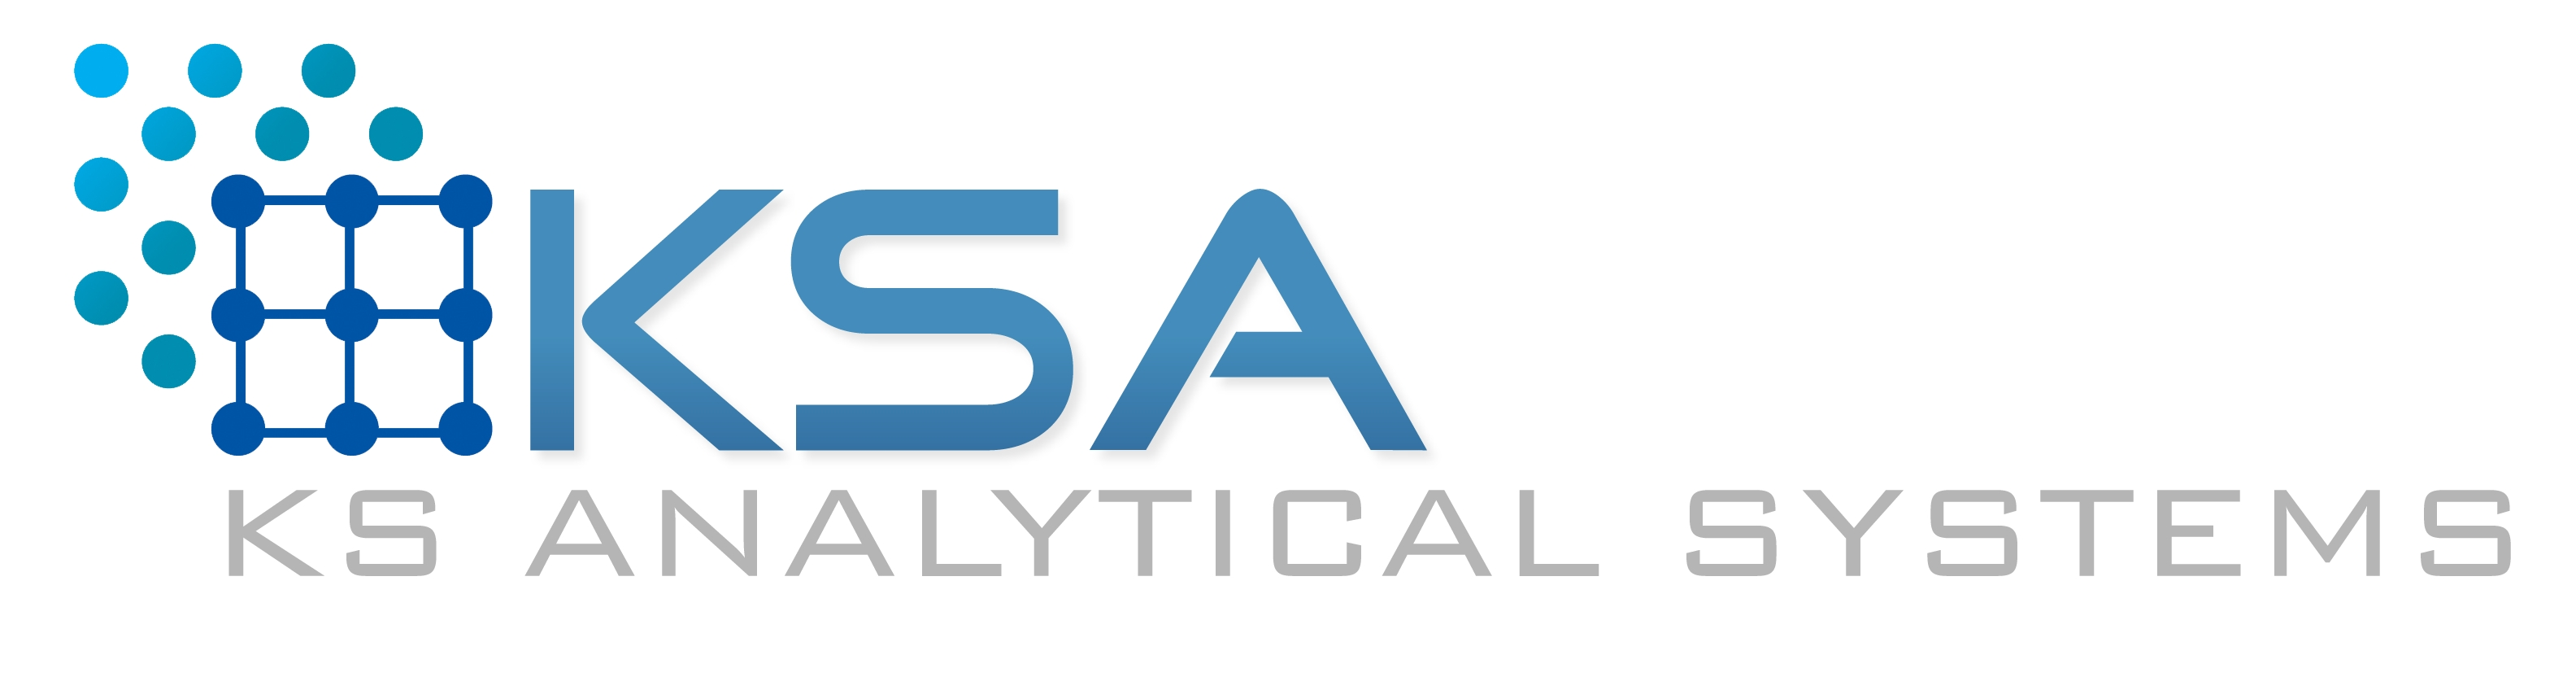 KS ANALYTICAL SYSTEMS